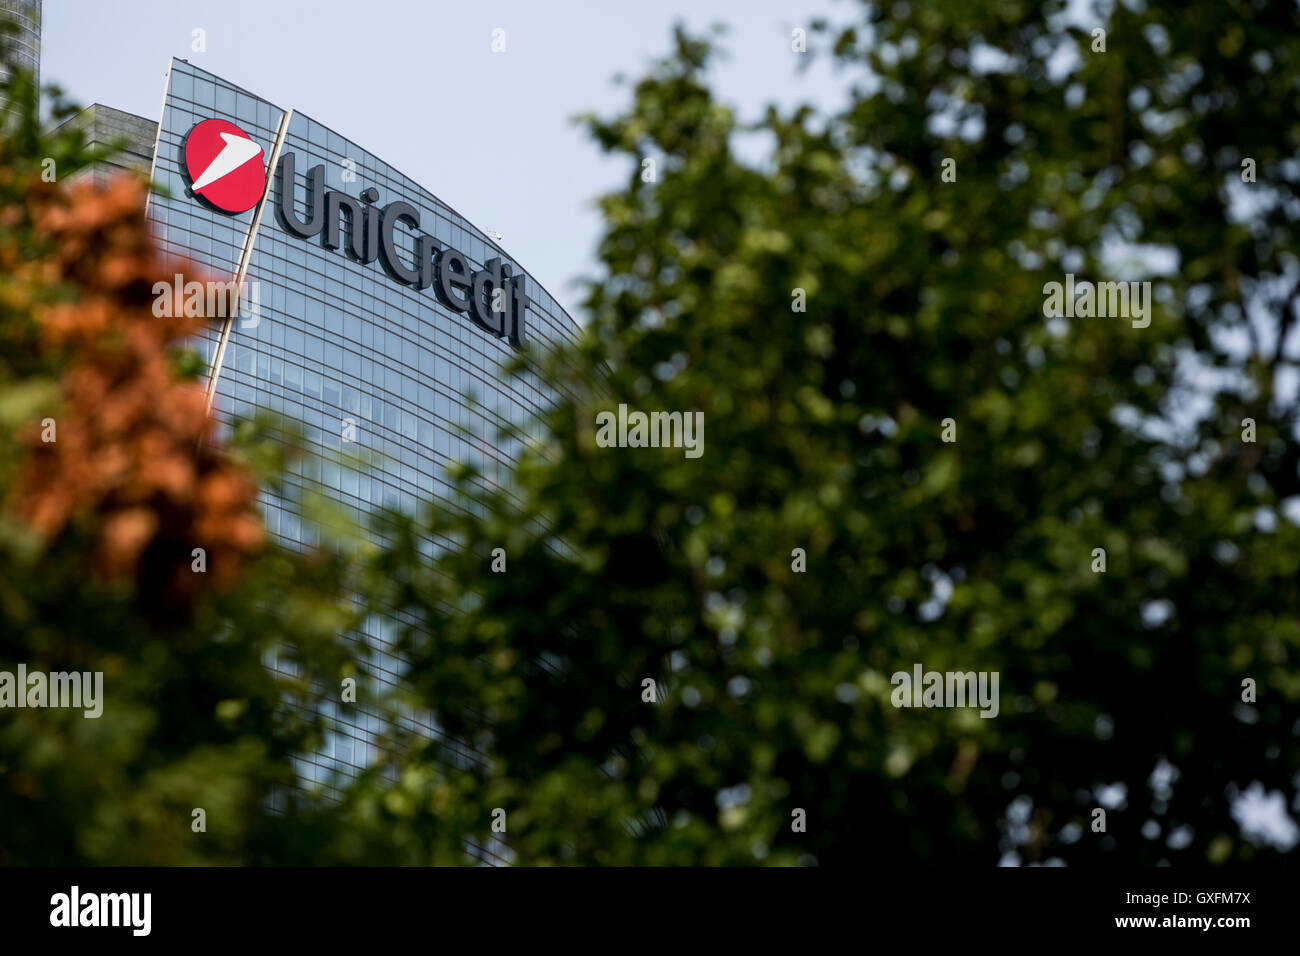 A logo sign outside of the headquarters of the UniCredit Group in Milan, Italy on September 3, 2016. - Stock Image